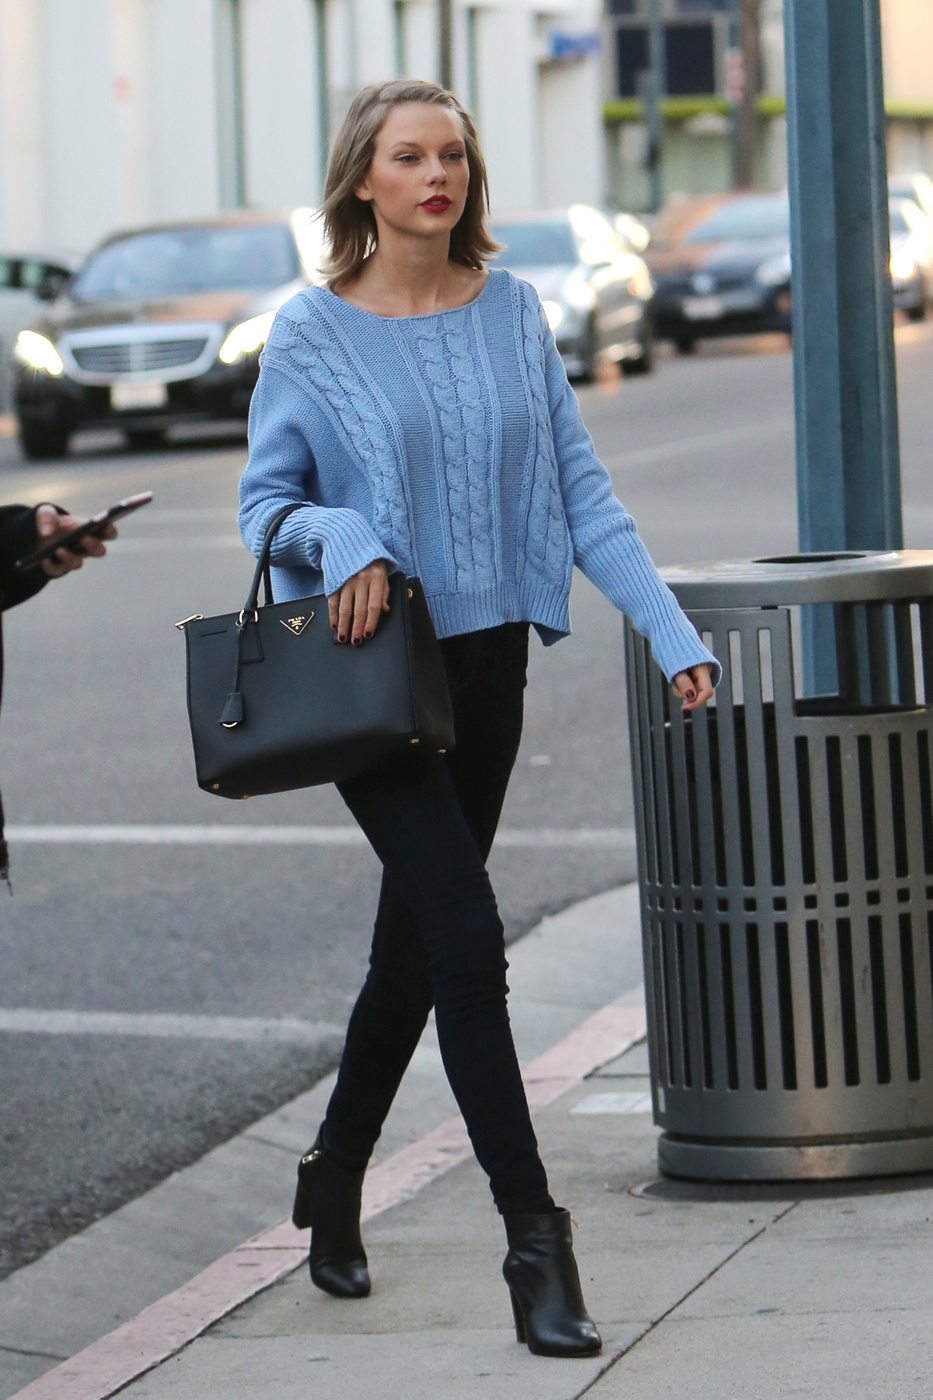 Taylor Swift The Budget Babe Affordable Fashion Style Blog